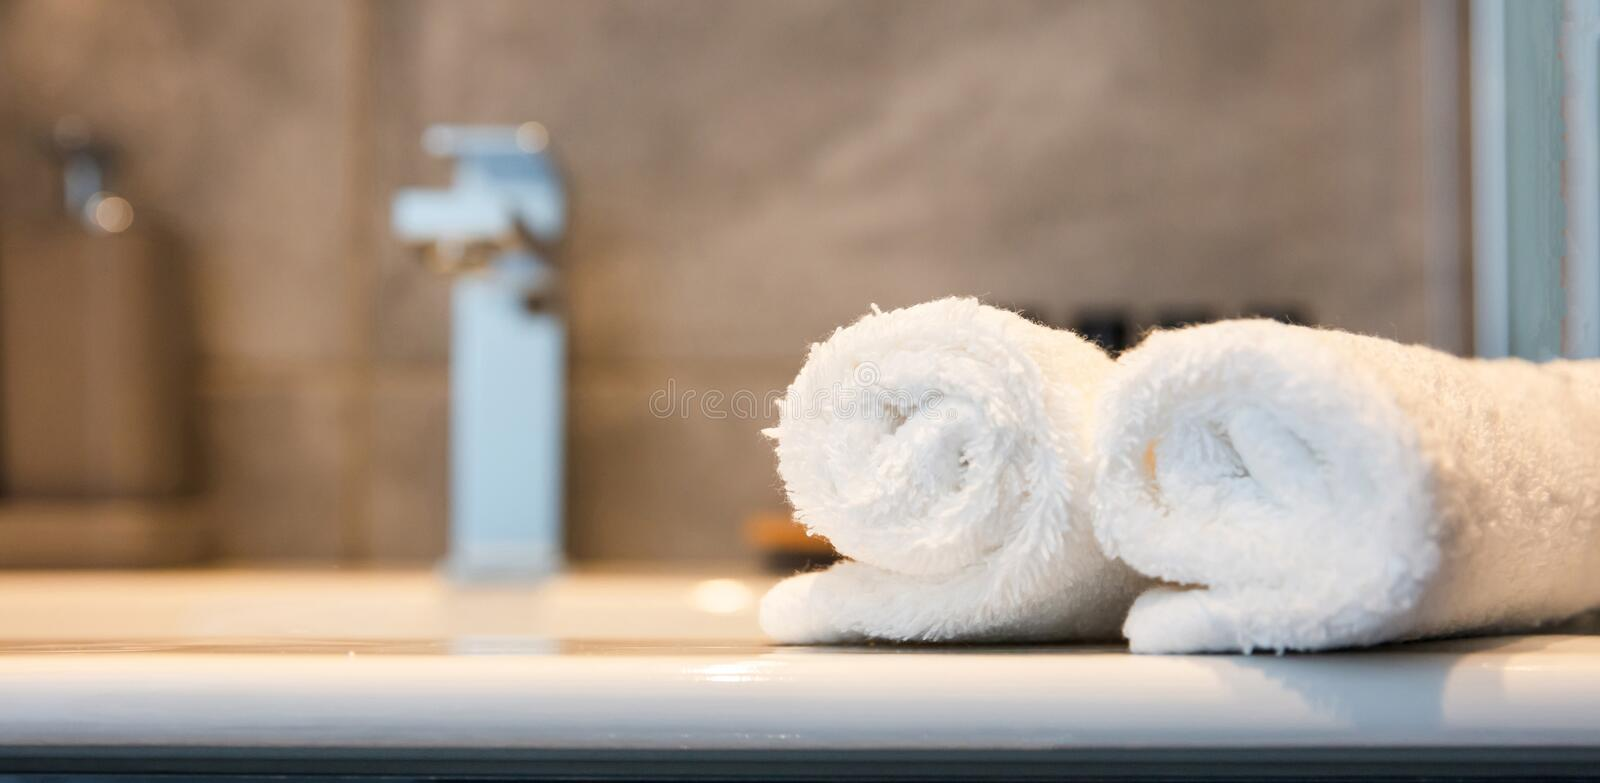 Luxury bathroom sink and white towels. Closeup view with details. Bathroom interior. Blur sink and white roll ups of hand towels. Closeup view with details royalty free stock image